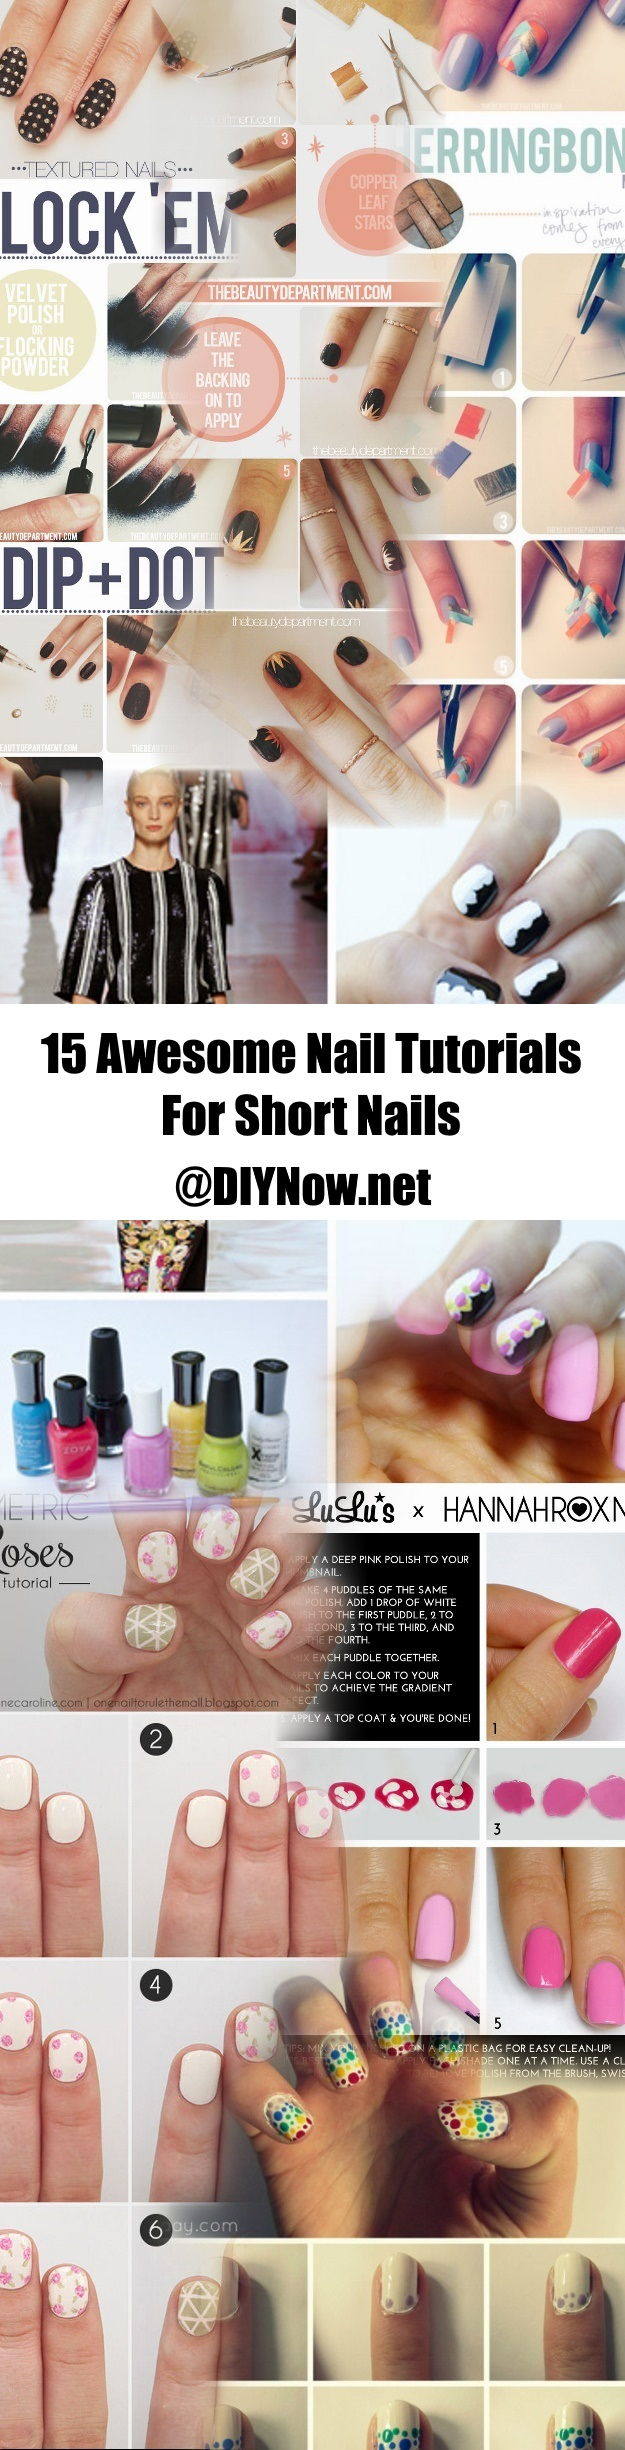 15 Awesome Nail Tutorials For Short Nails